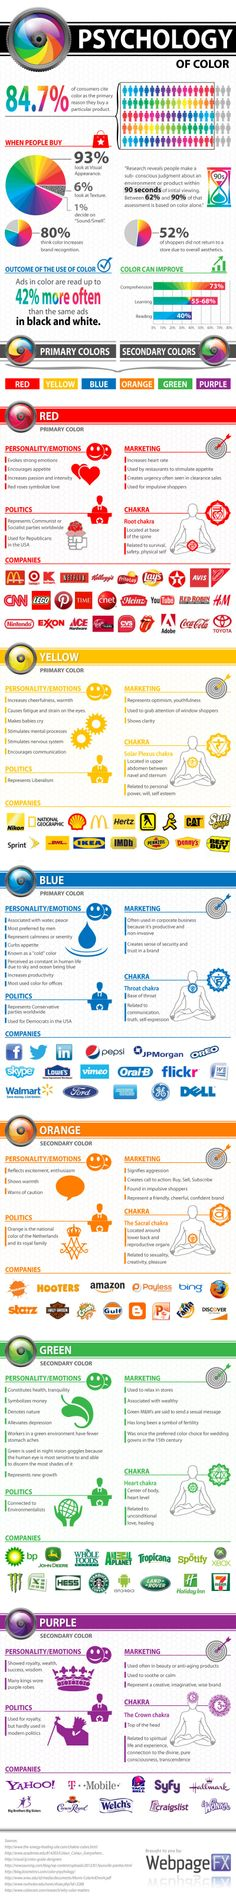 The Psychology of Color: How it Affects Buying Decisions [Infographic]